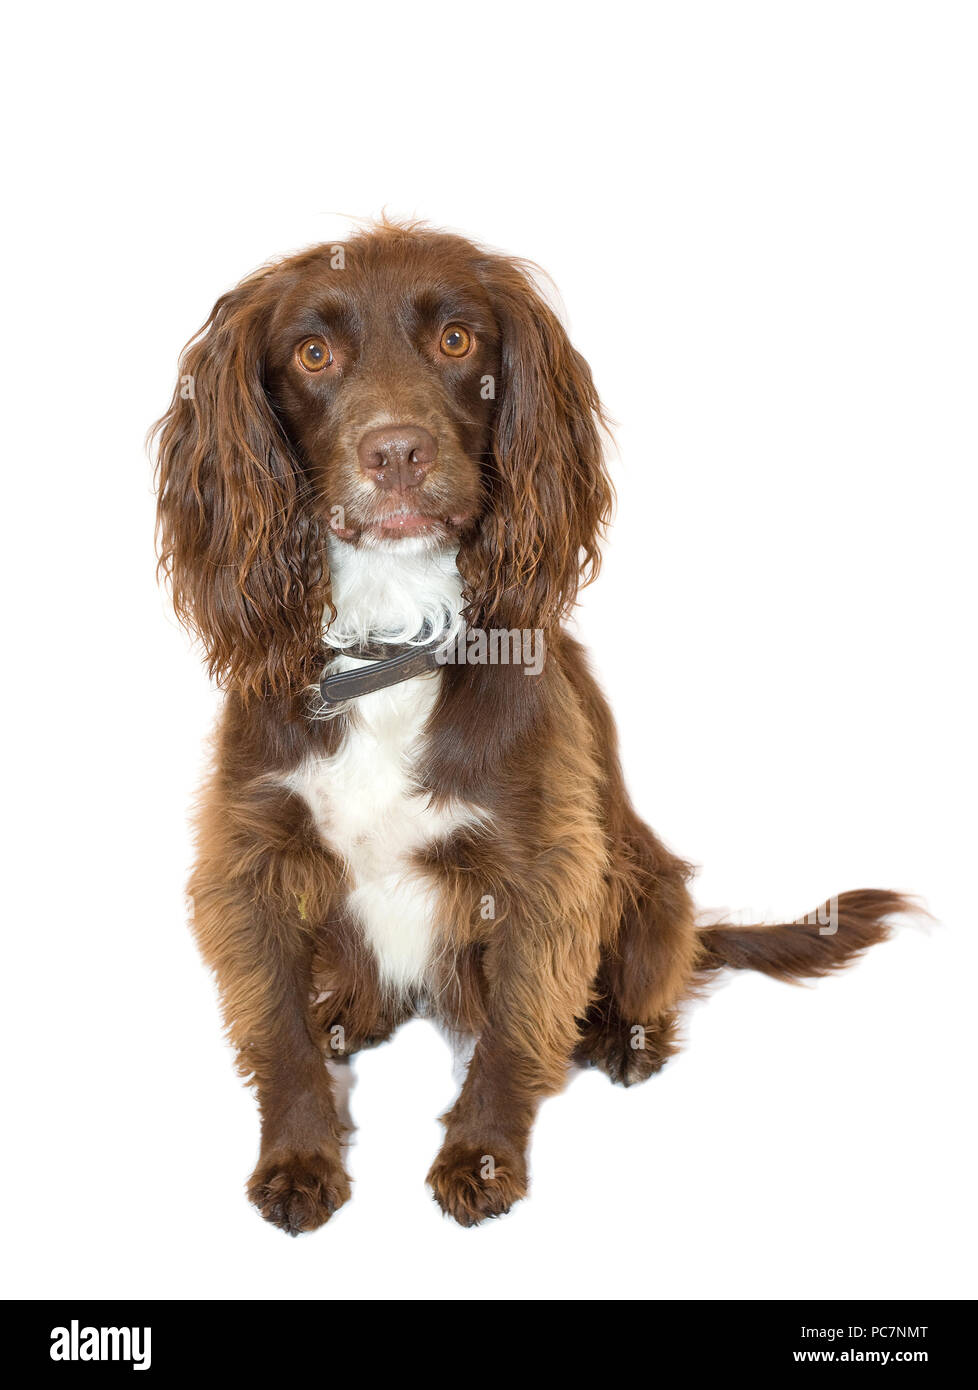 Male Sprocker Spaniel on isolated white background - Stock Image